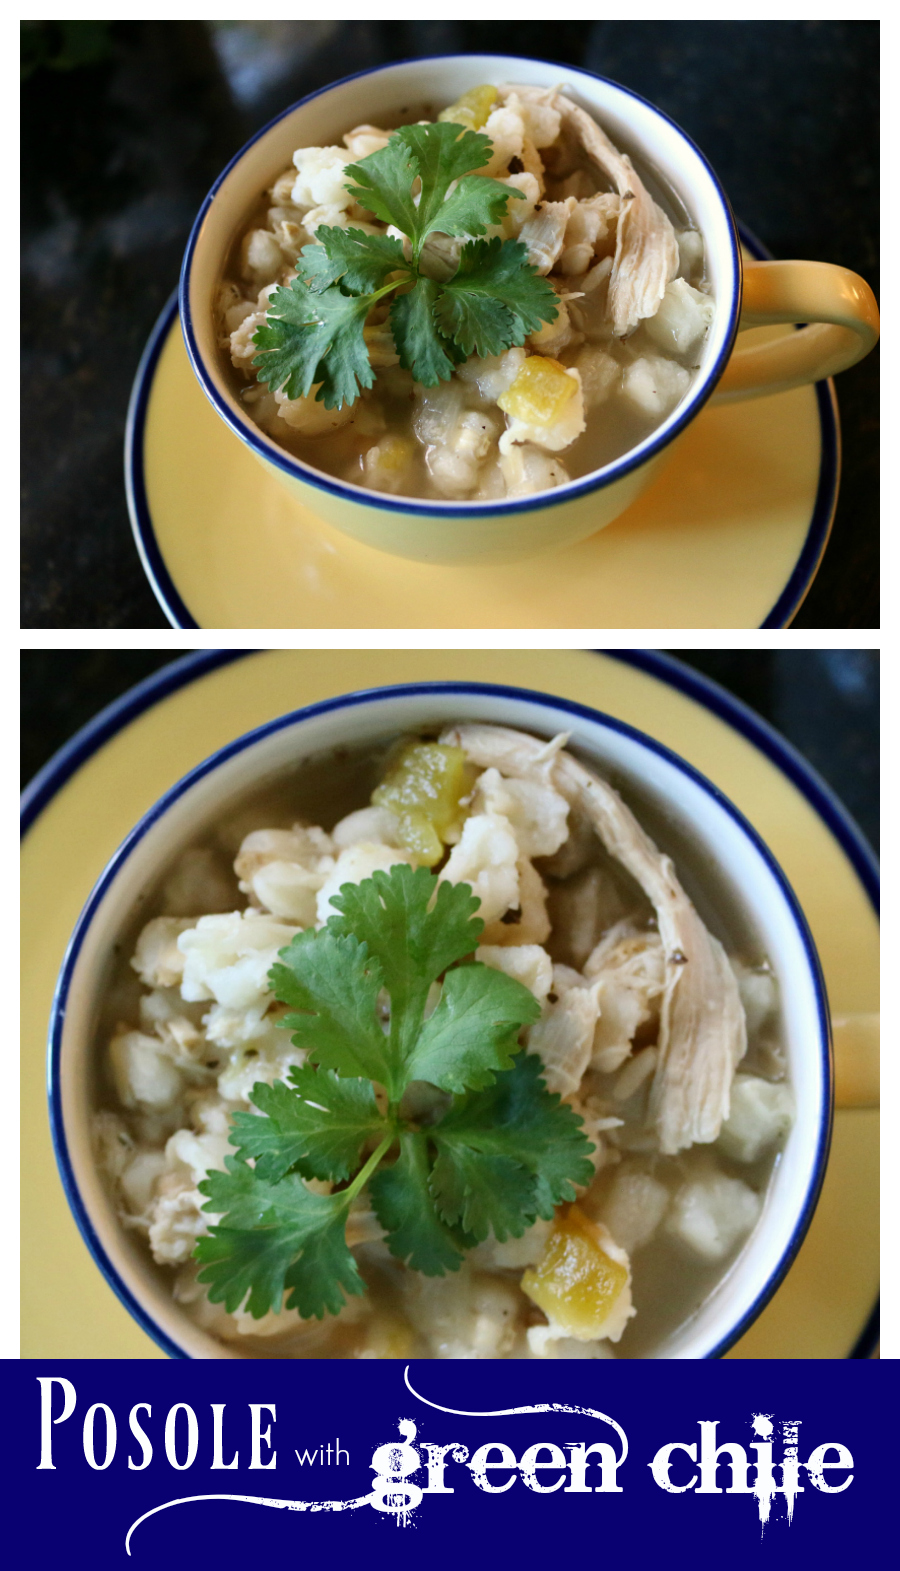 Green Chile Chicken Posole a New Mexican Favorite CeceliasGoodStuff.com Good Food for Good People